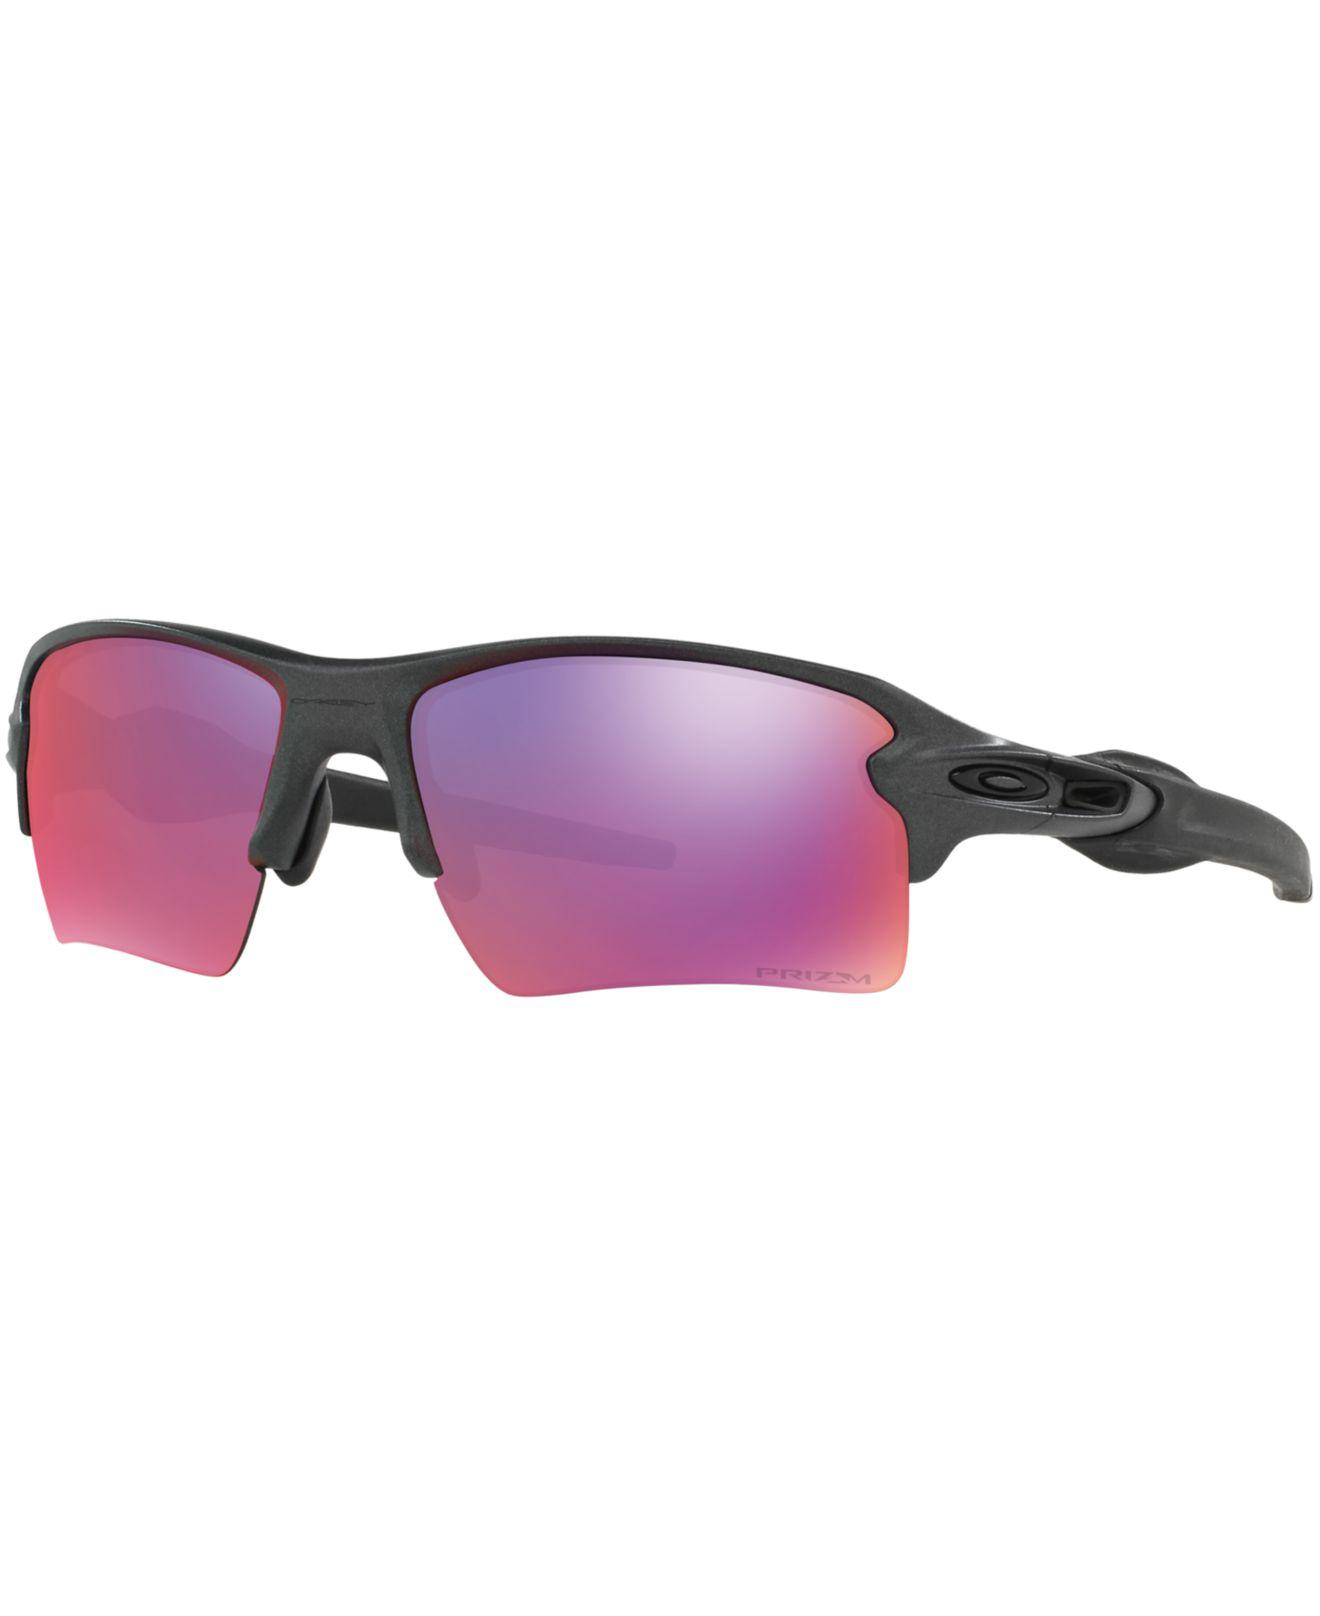 d35796a488c Lyst - Oakley Oo9188 Flak 2.0 Xl Prizm Road in Gray for Men